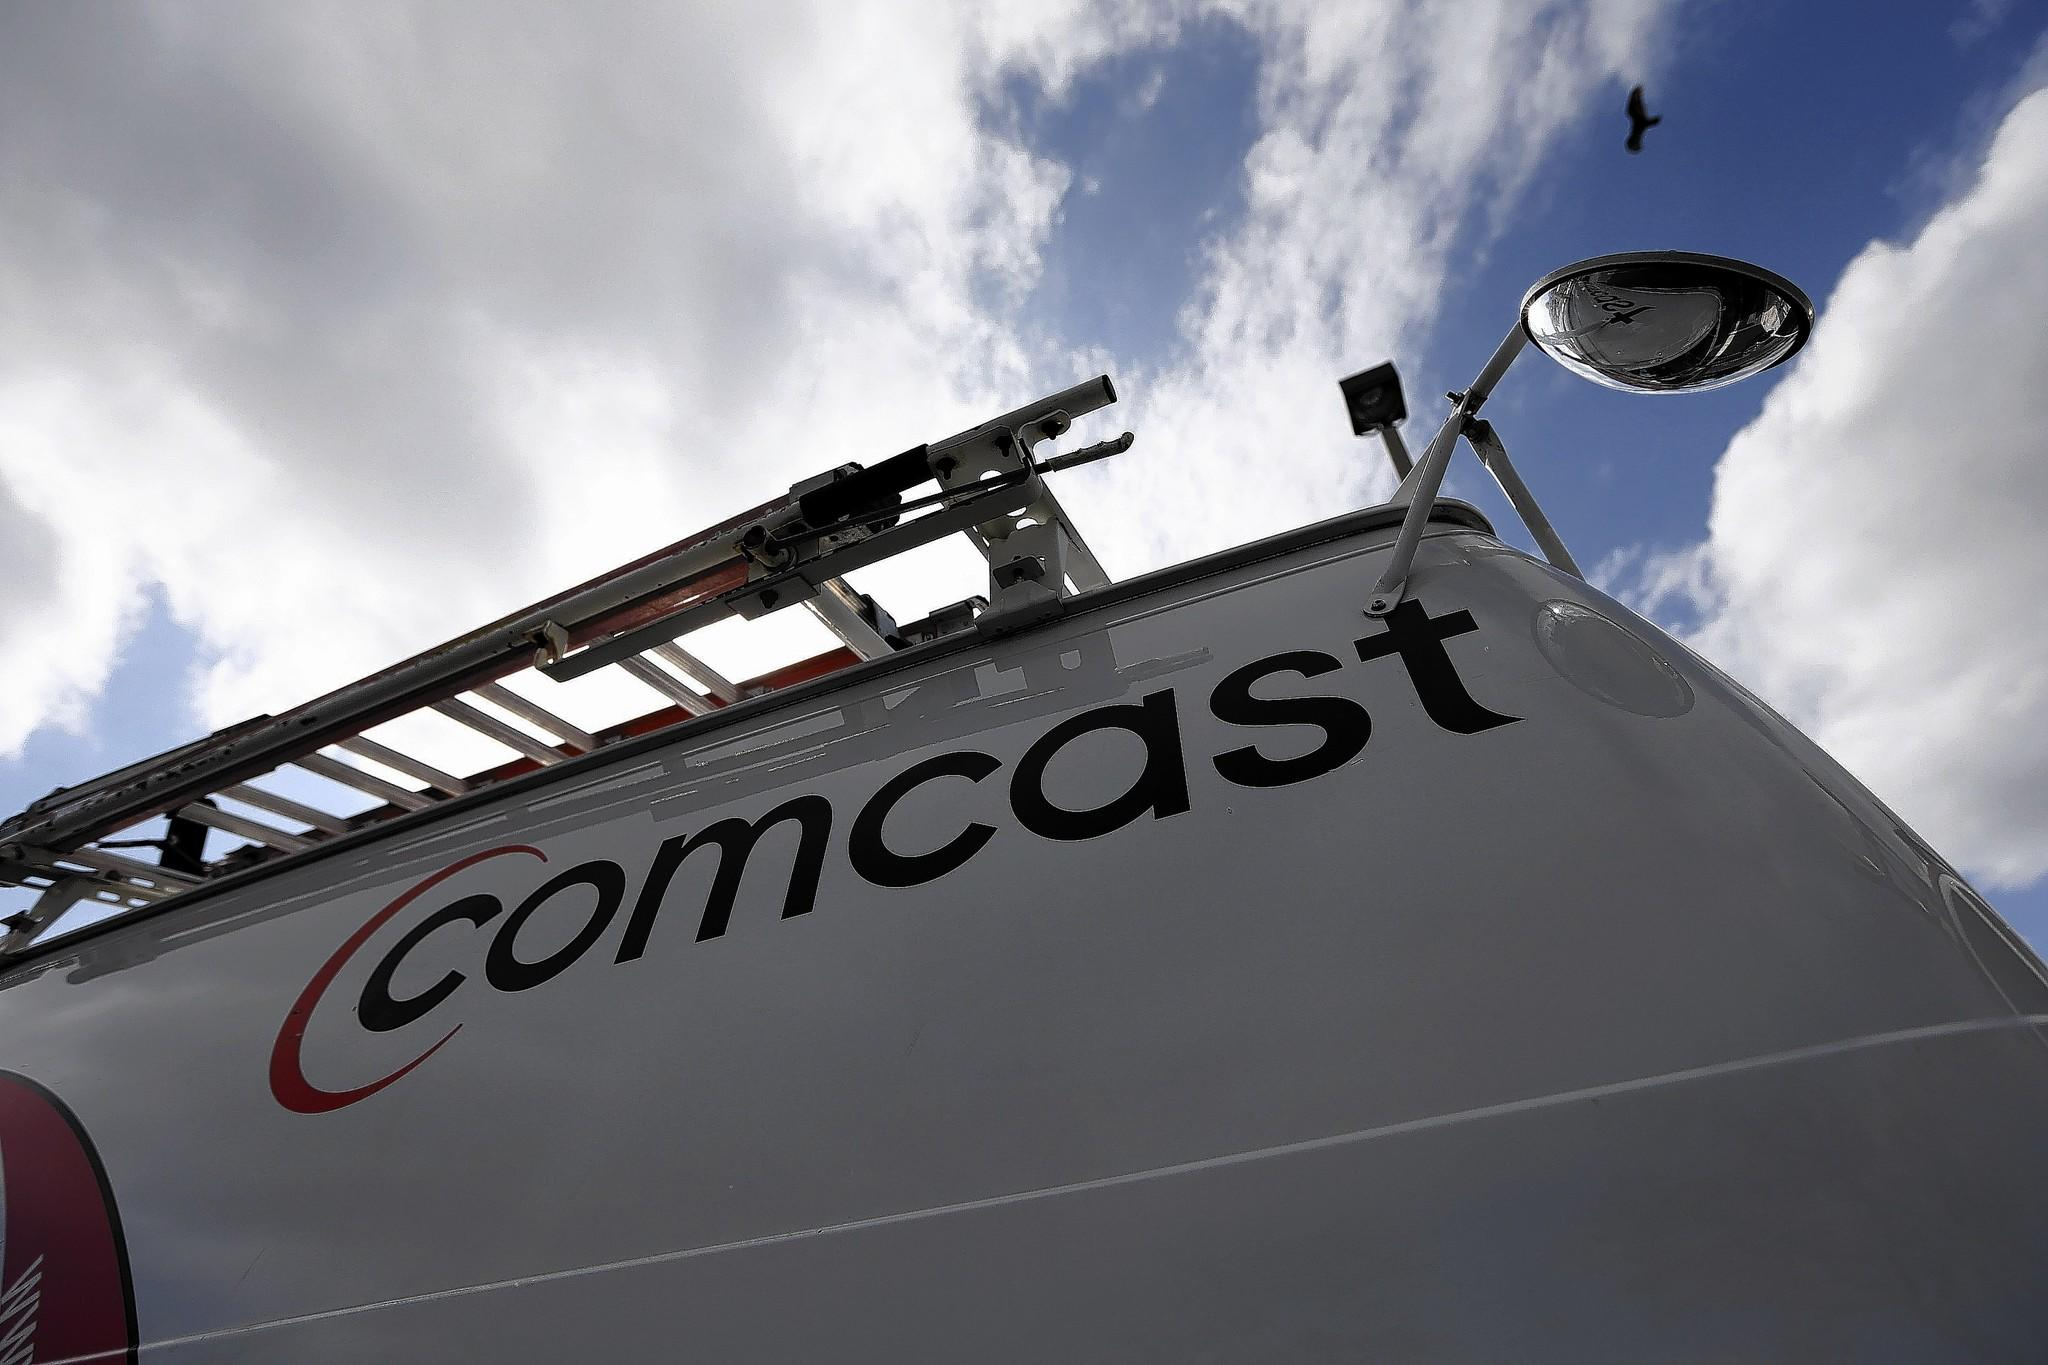 Is Comcast's proposed acquisition of Time Warner Cable good or bad for consumers? Experts disagree.